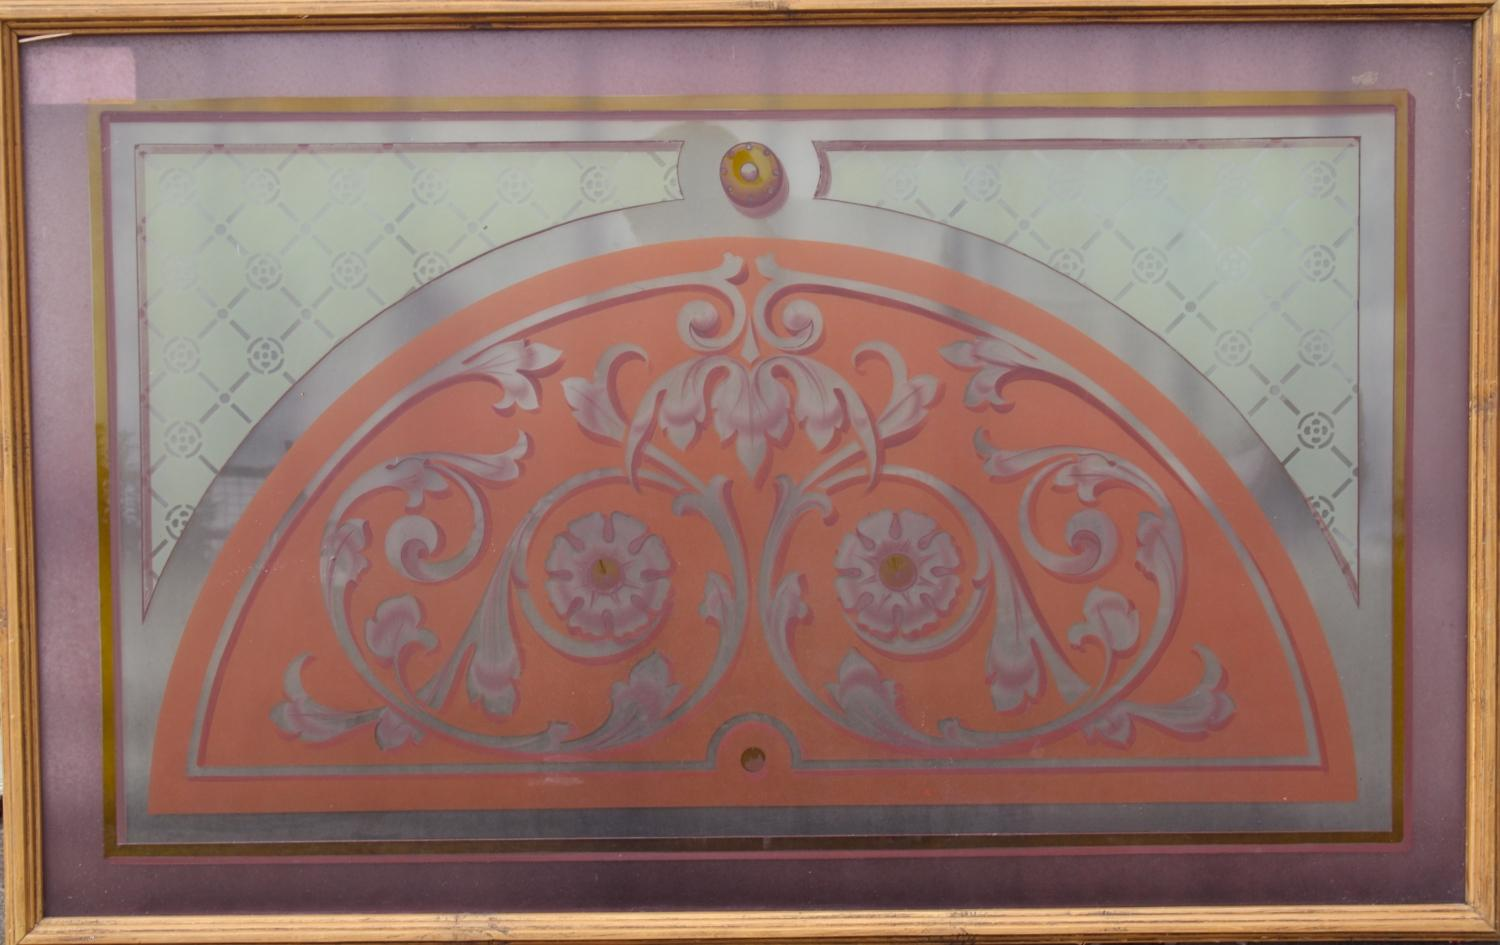 Stained glass window in frame